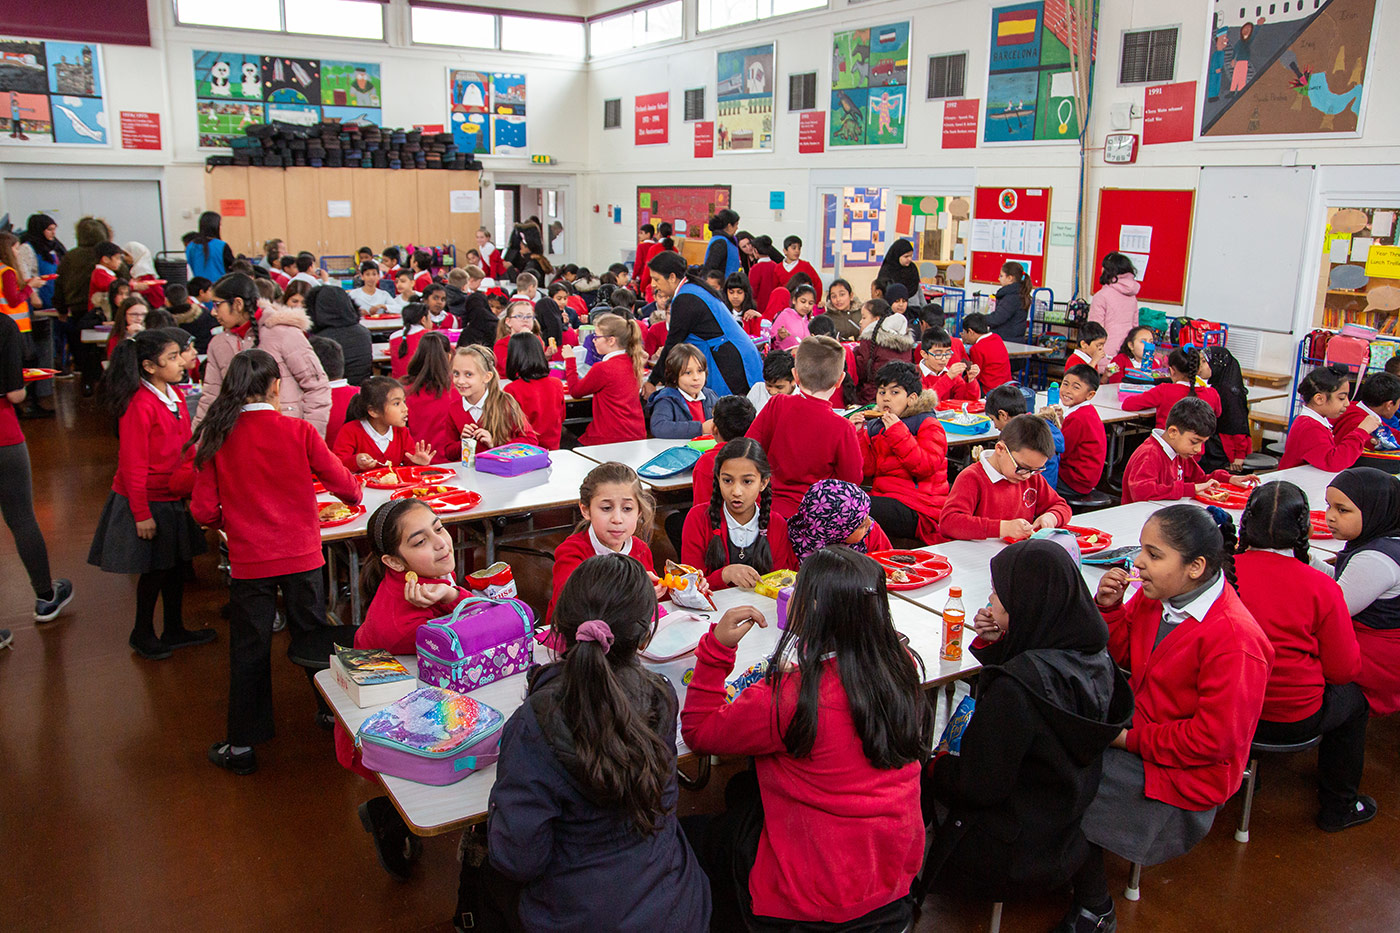 Curriculum Year 1 - Orchard Primary School Hounslow